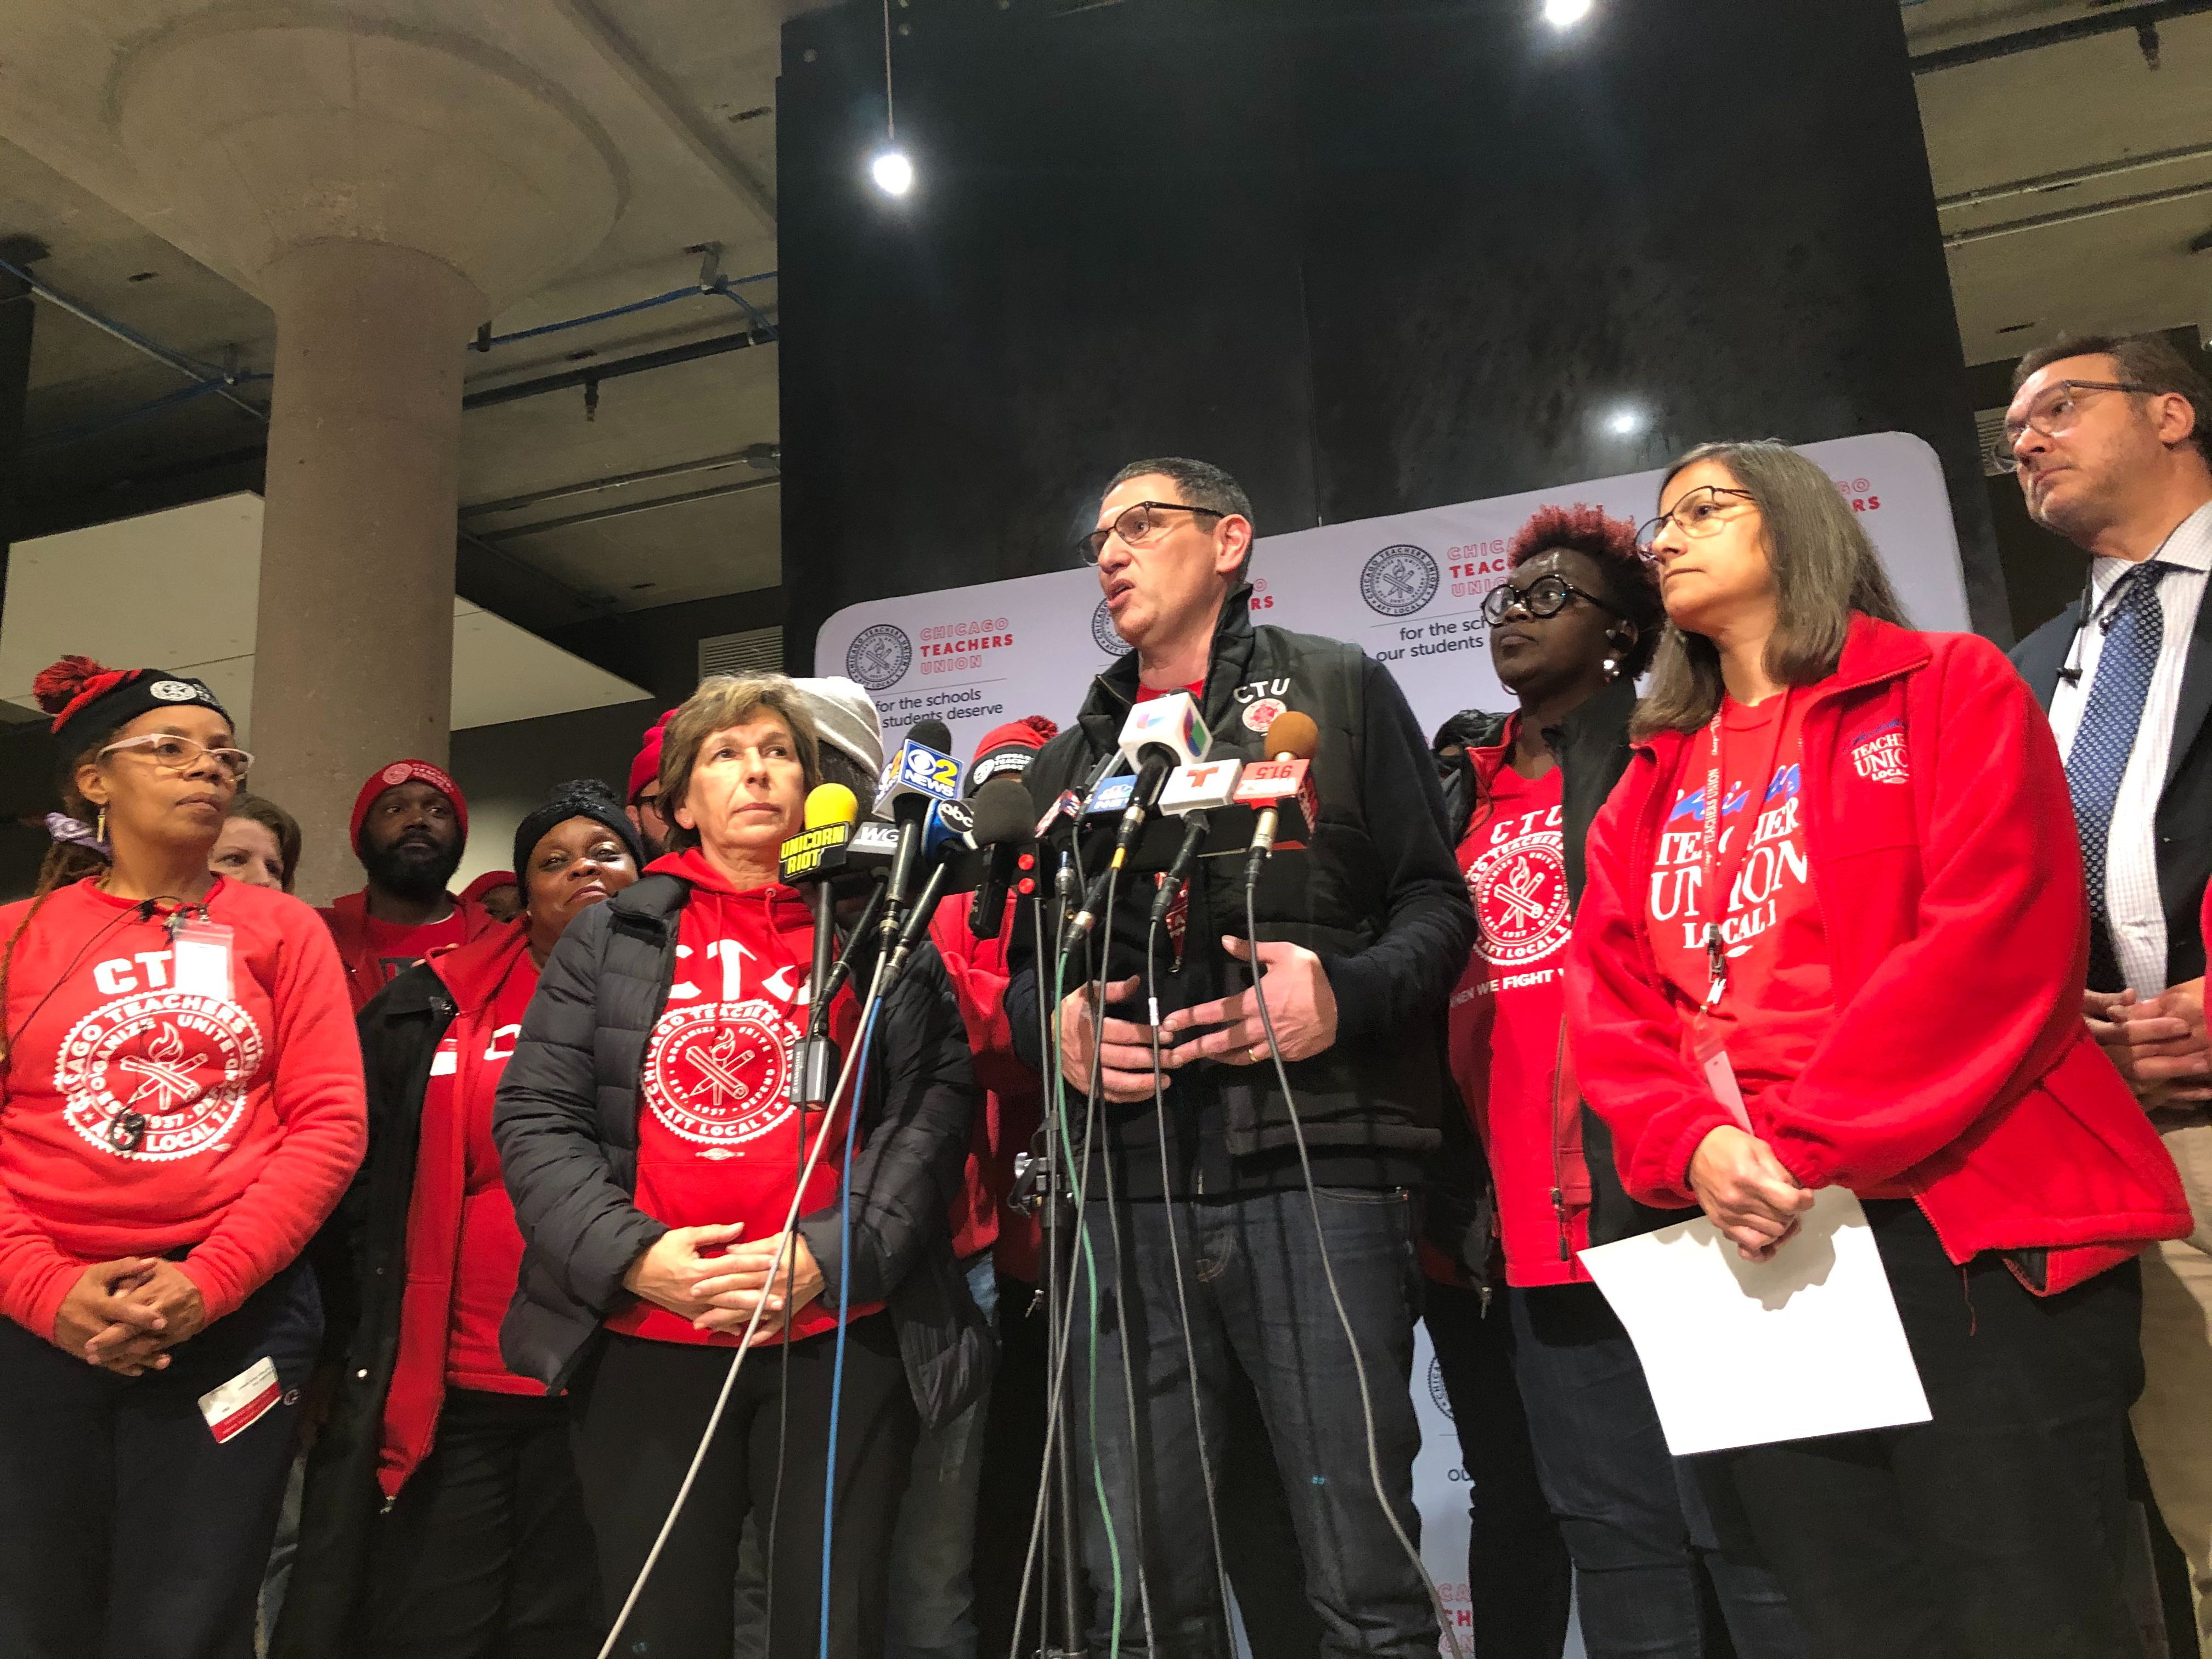 Chicago Teachers Union chief Jesse Sharkey, center, speaks to the press after a House of Delegates vote to accept a tentative contract, Oct. 30, 2019.